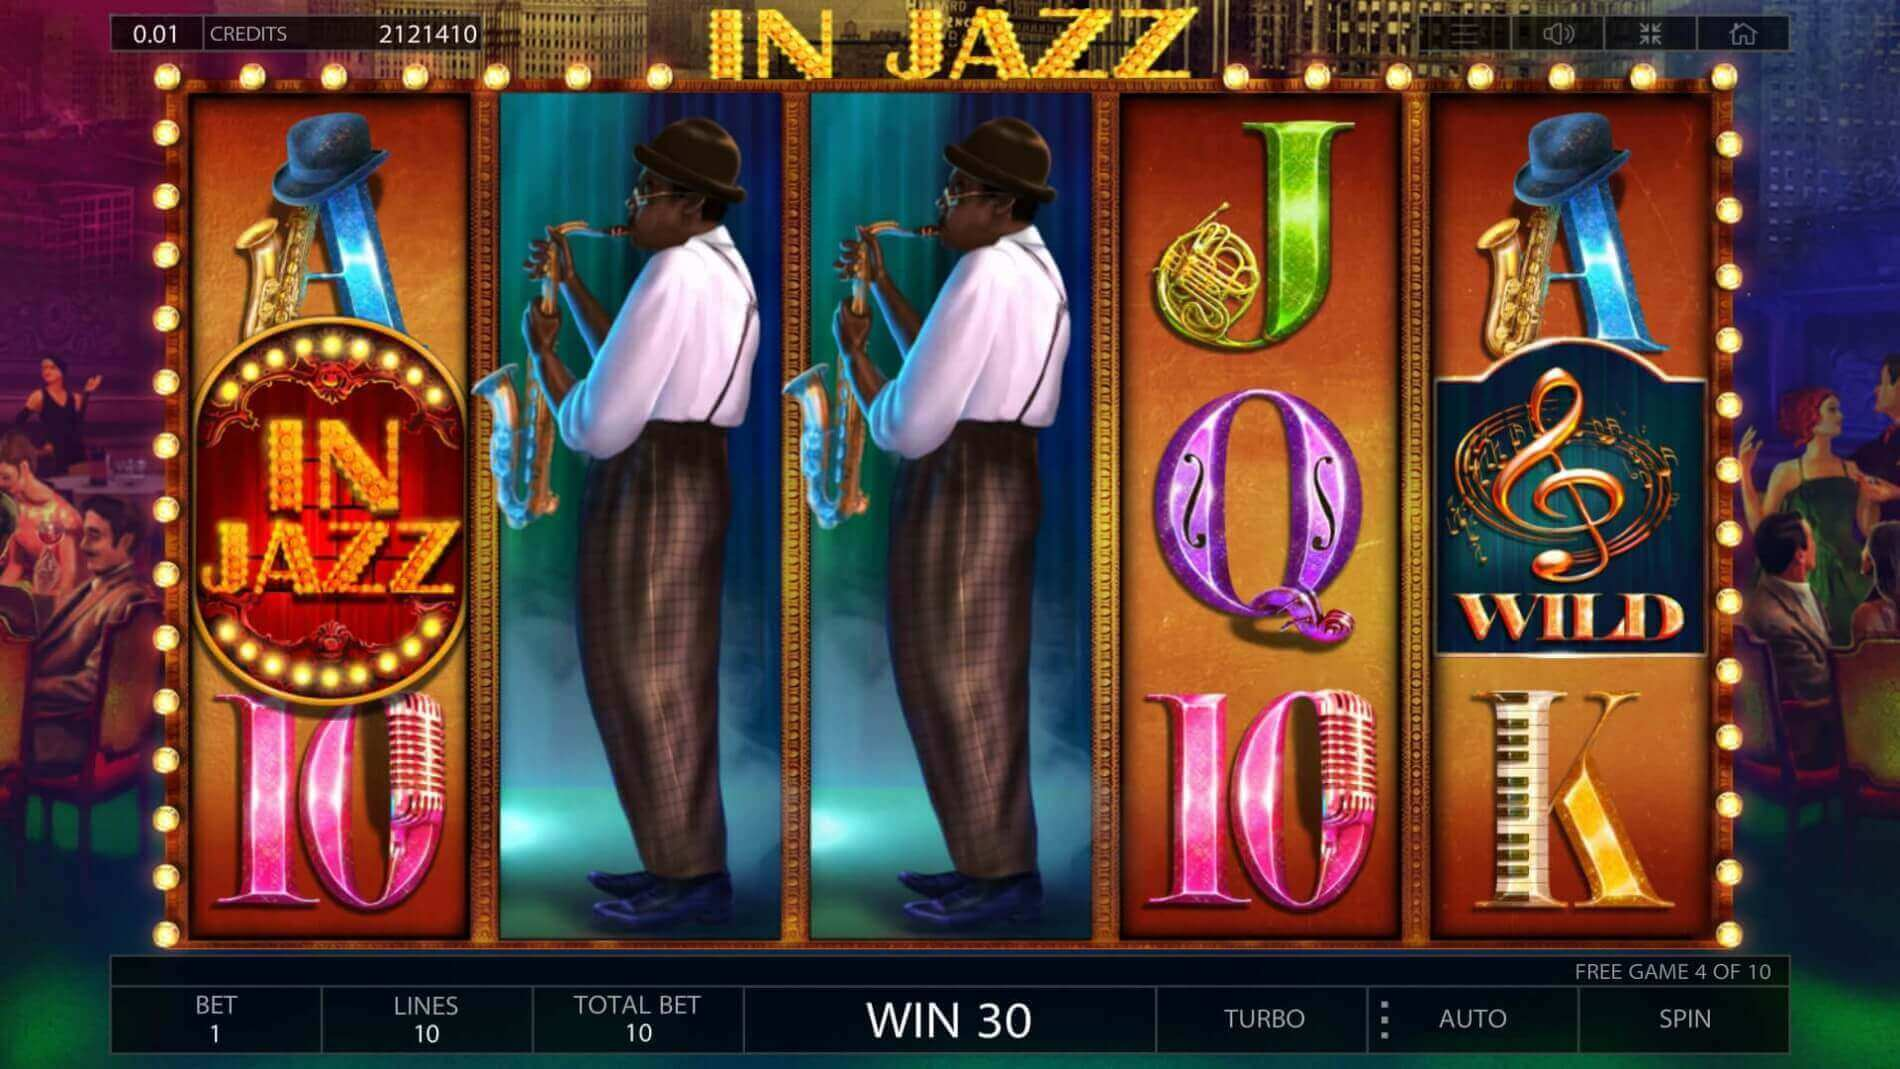 In Jazz play demo slot